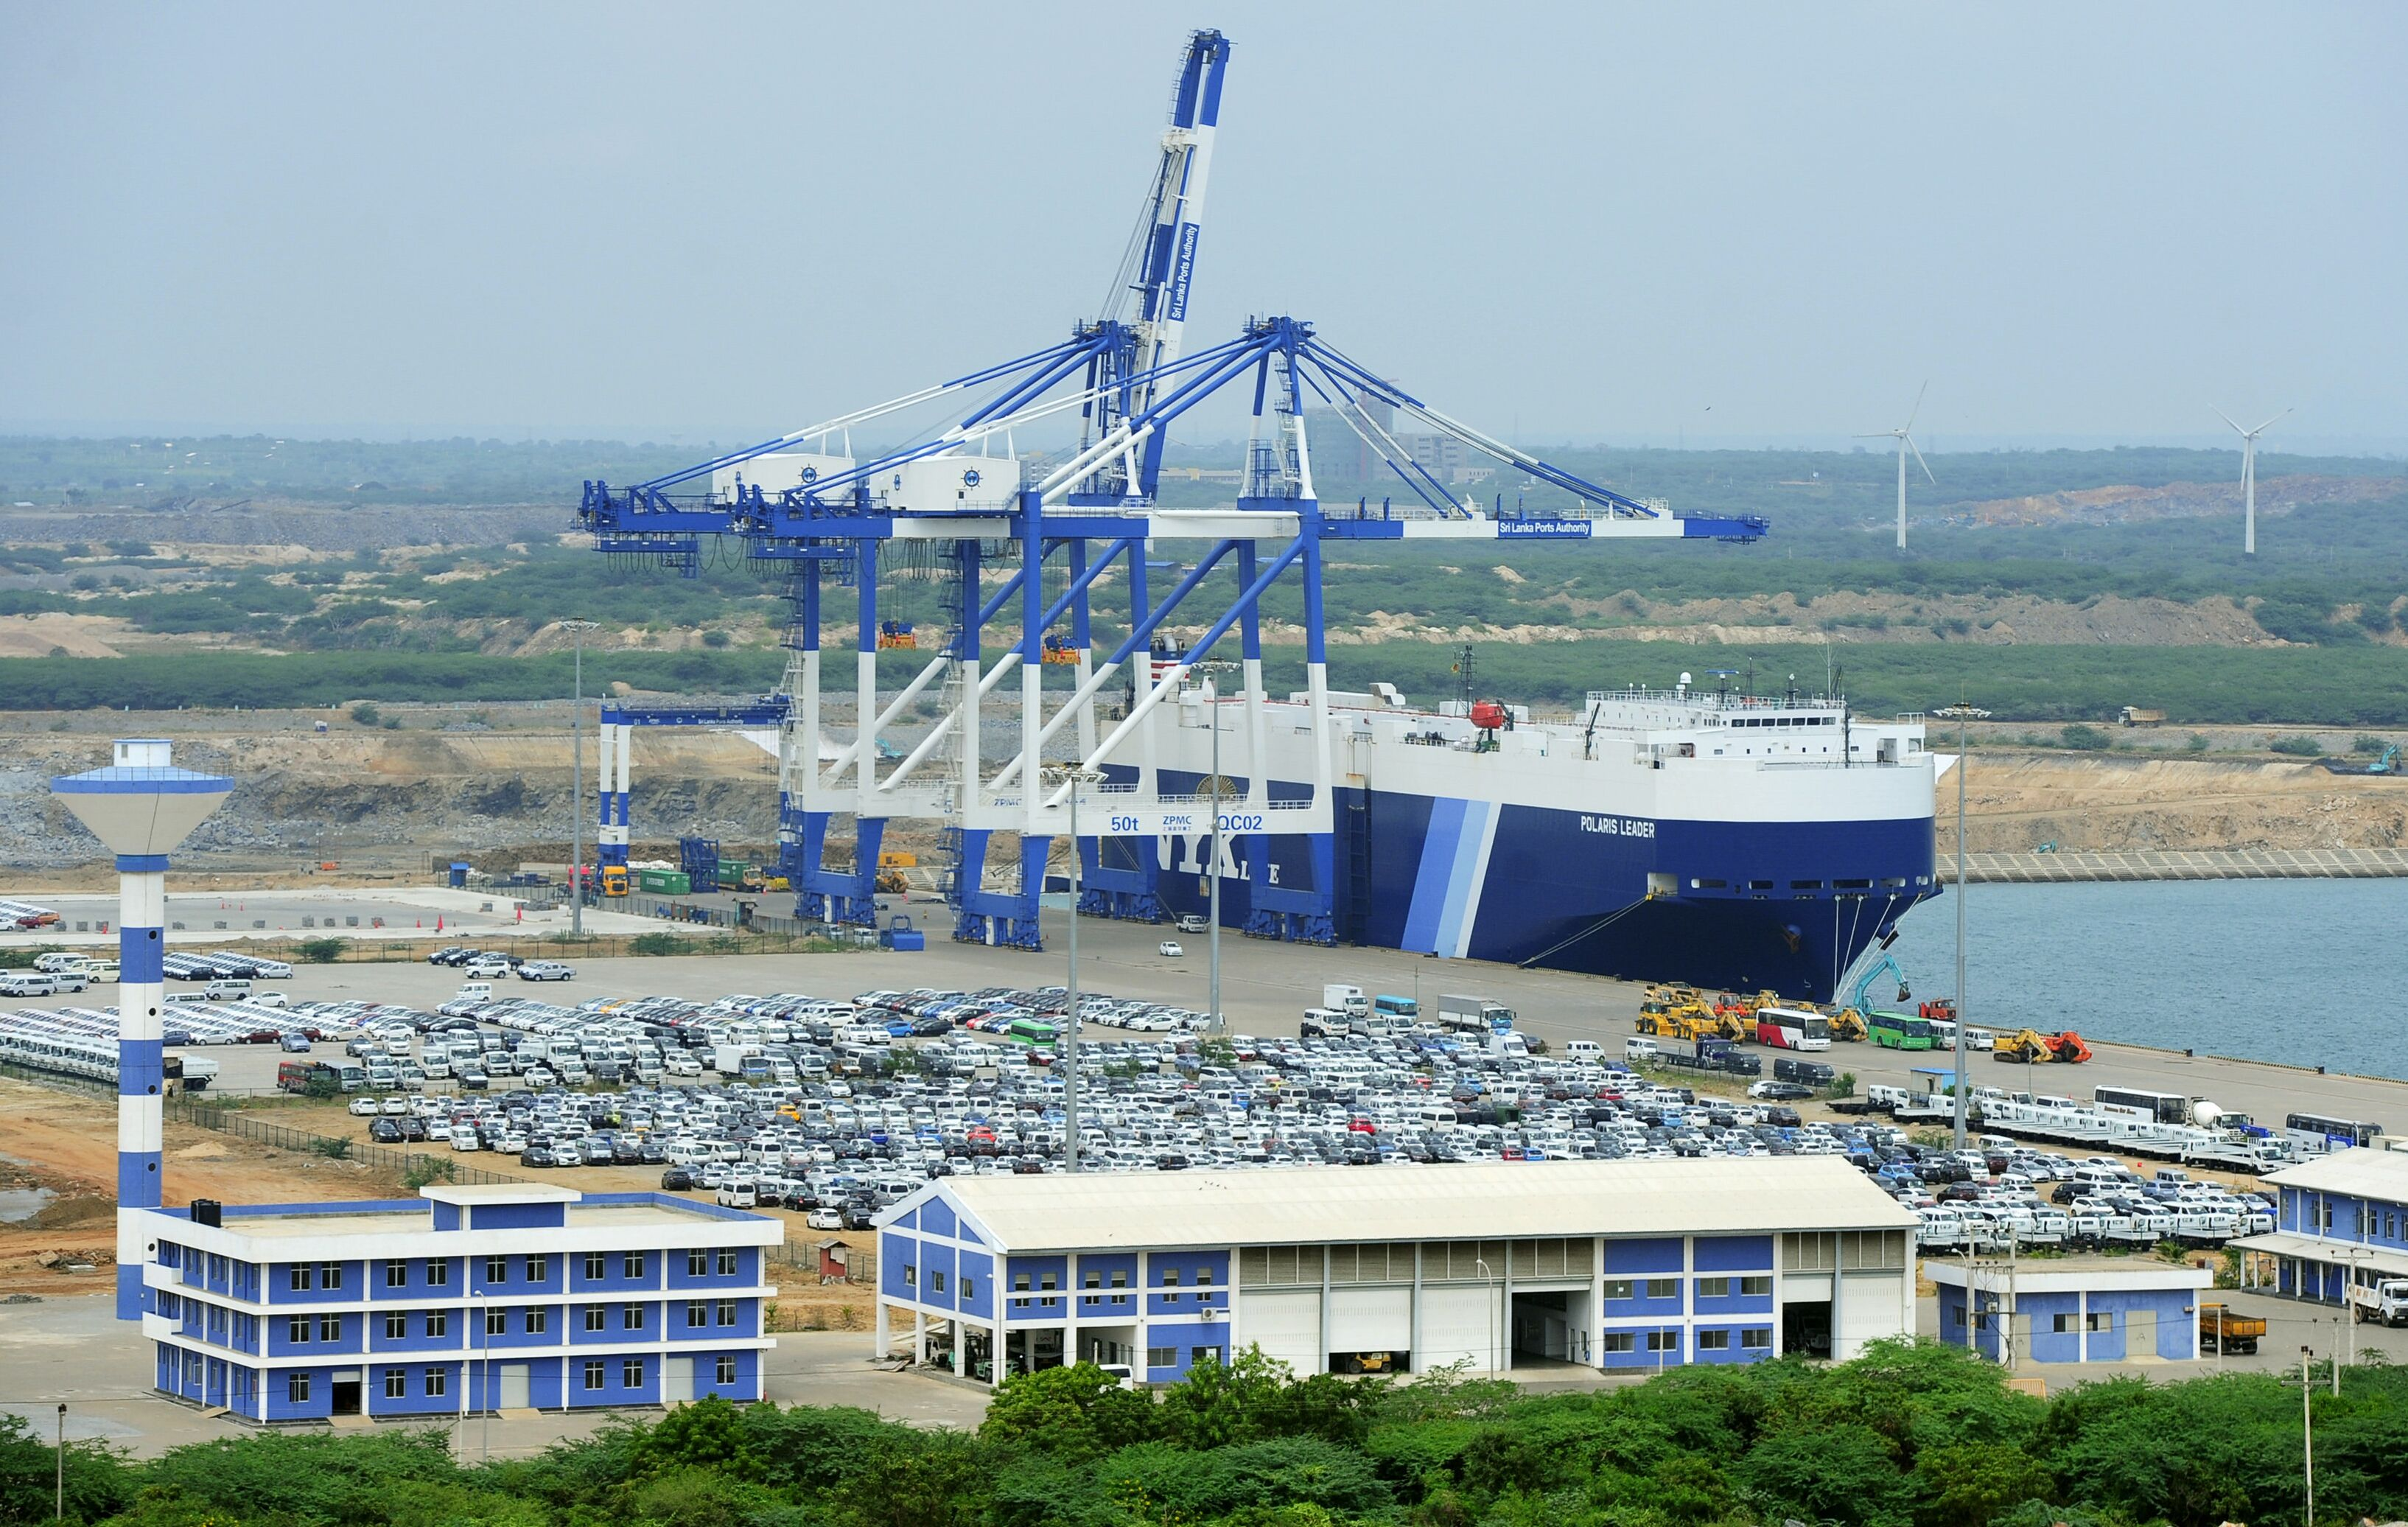 In this photograph taken on February 10, 2015, shows a general view of the port facility at Hambantota